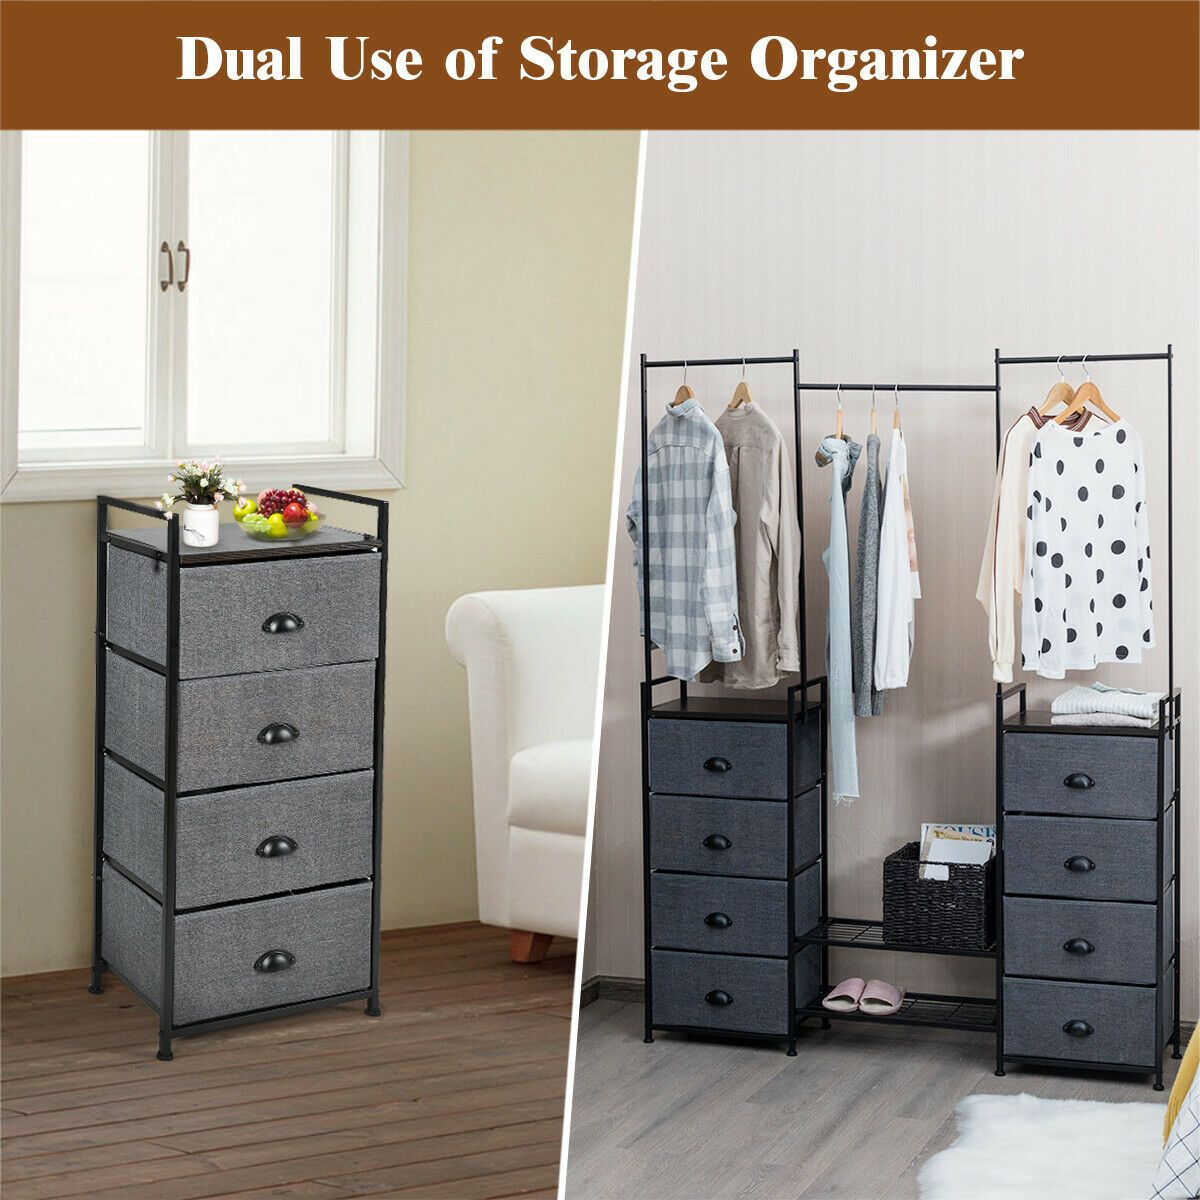 8 Drawer Fabric Dresser With Rack Multifunctional Storage Tower